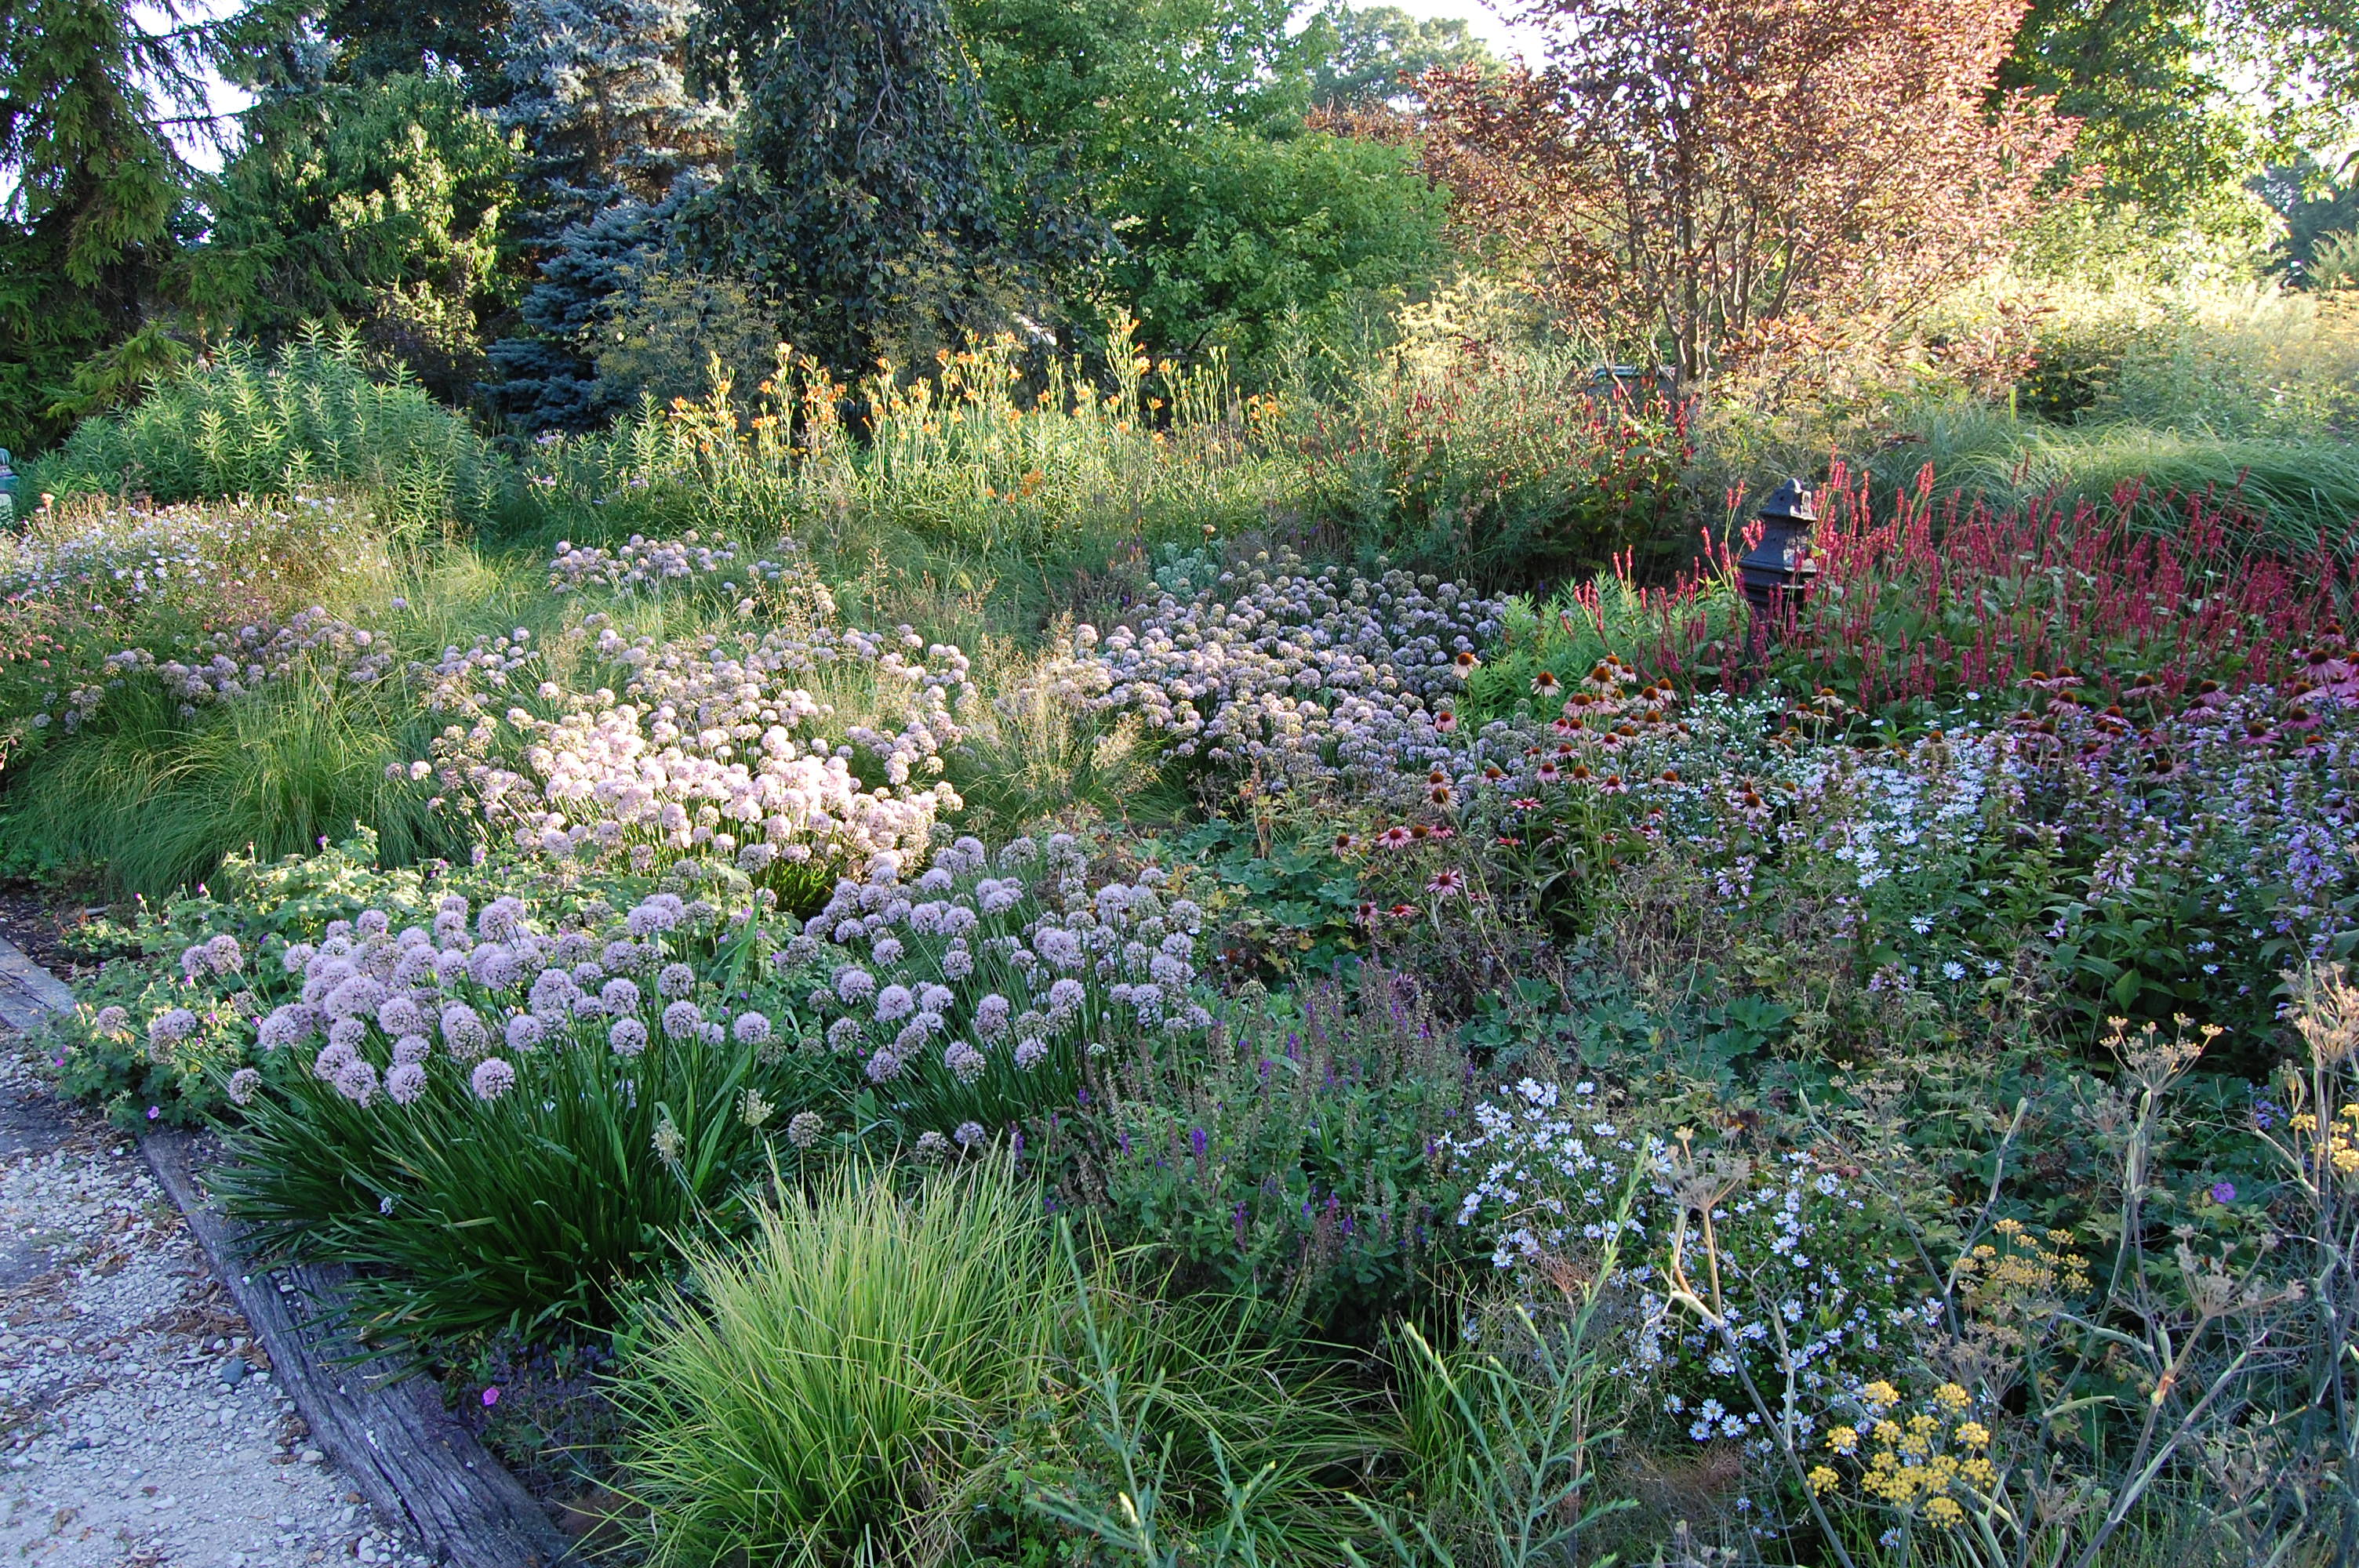 NorthWind Perennials in southern Wisconsin shows an original approach to perennial planting which can work on a variety of scales